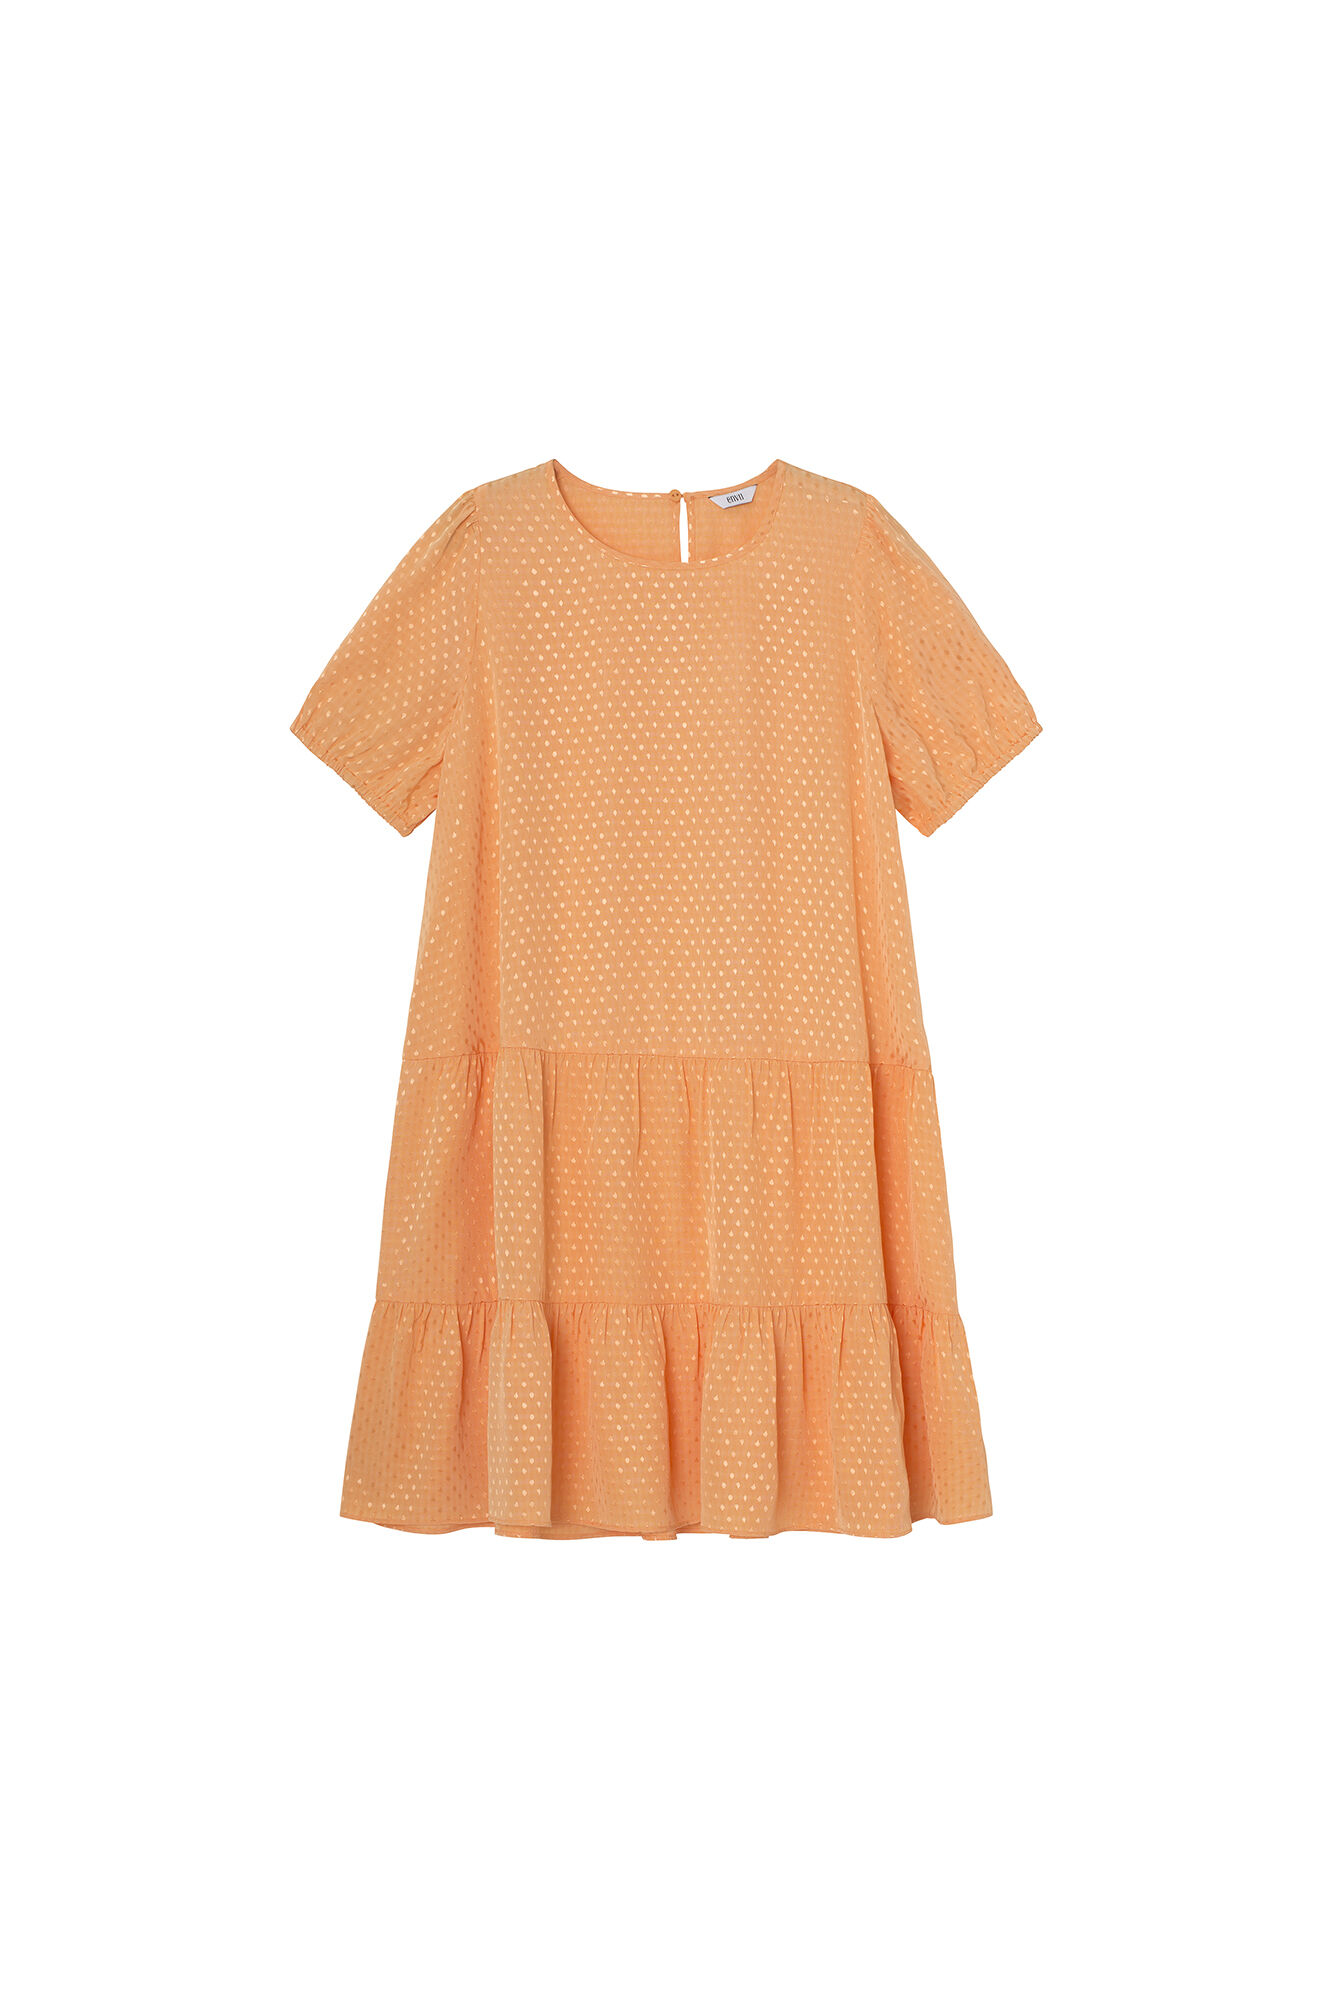 ENAMBRE SS DRESS 6639, SALMON BUFF